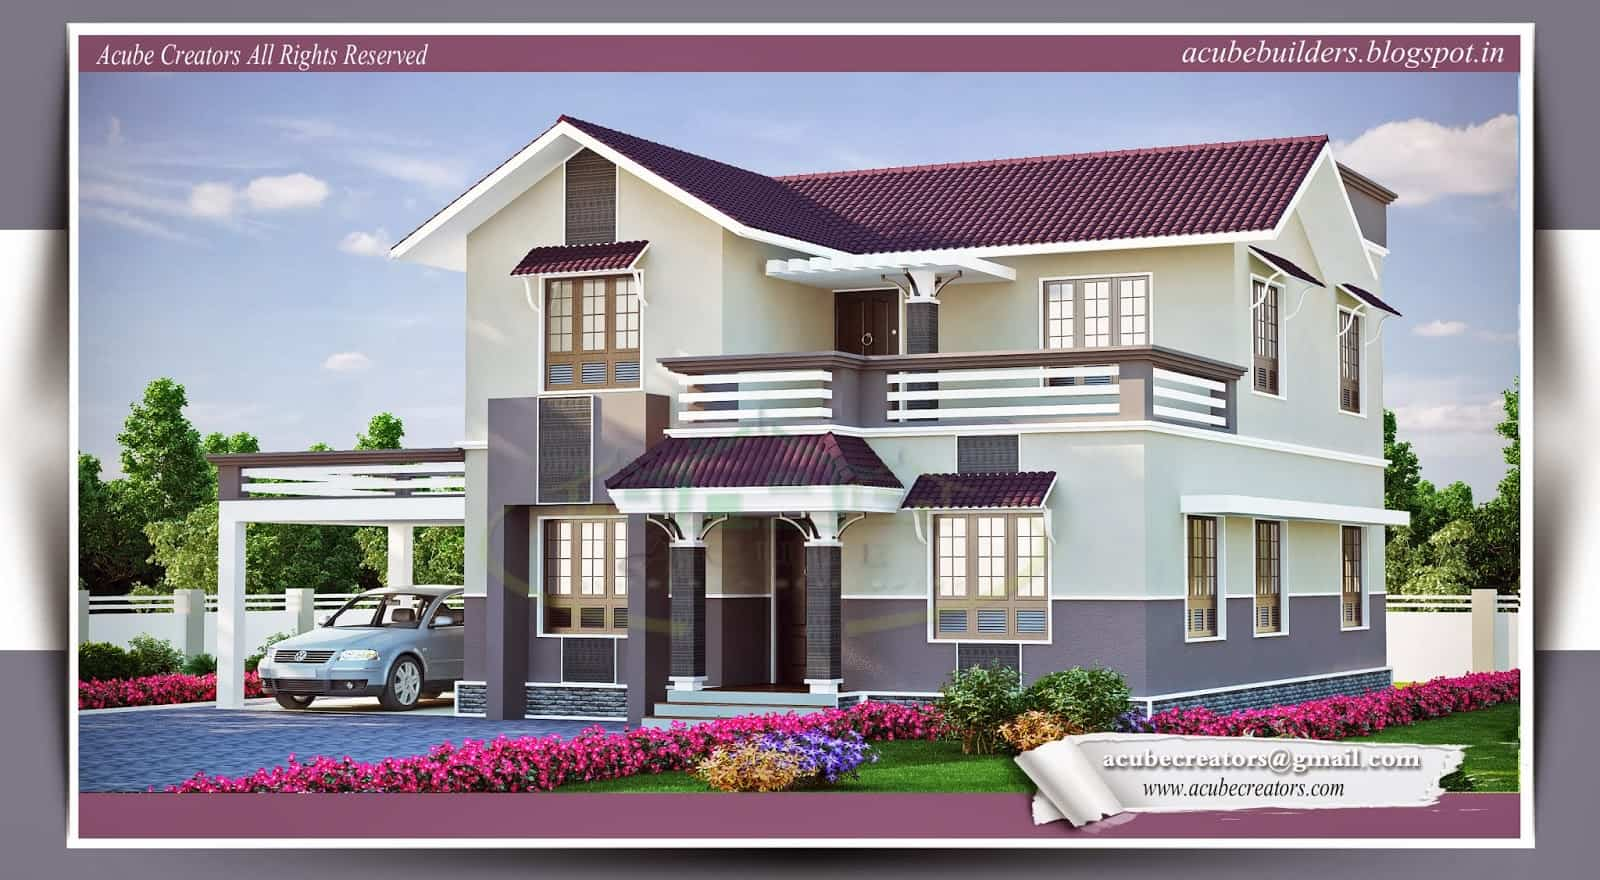 Kerala house plans with estimate for a 2900 home design for Kerala home designs com